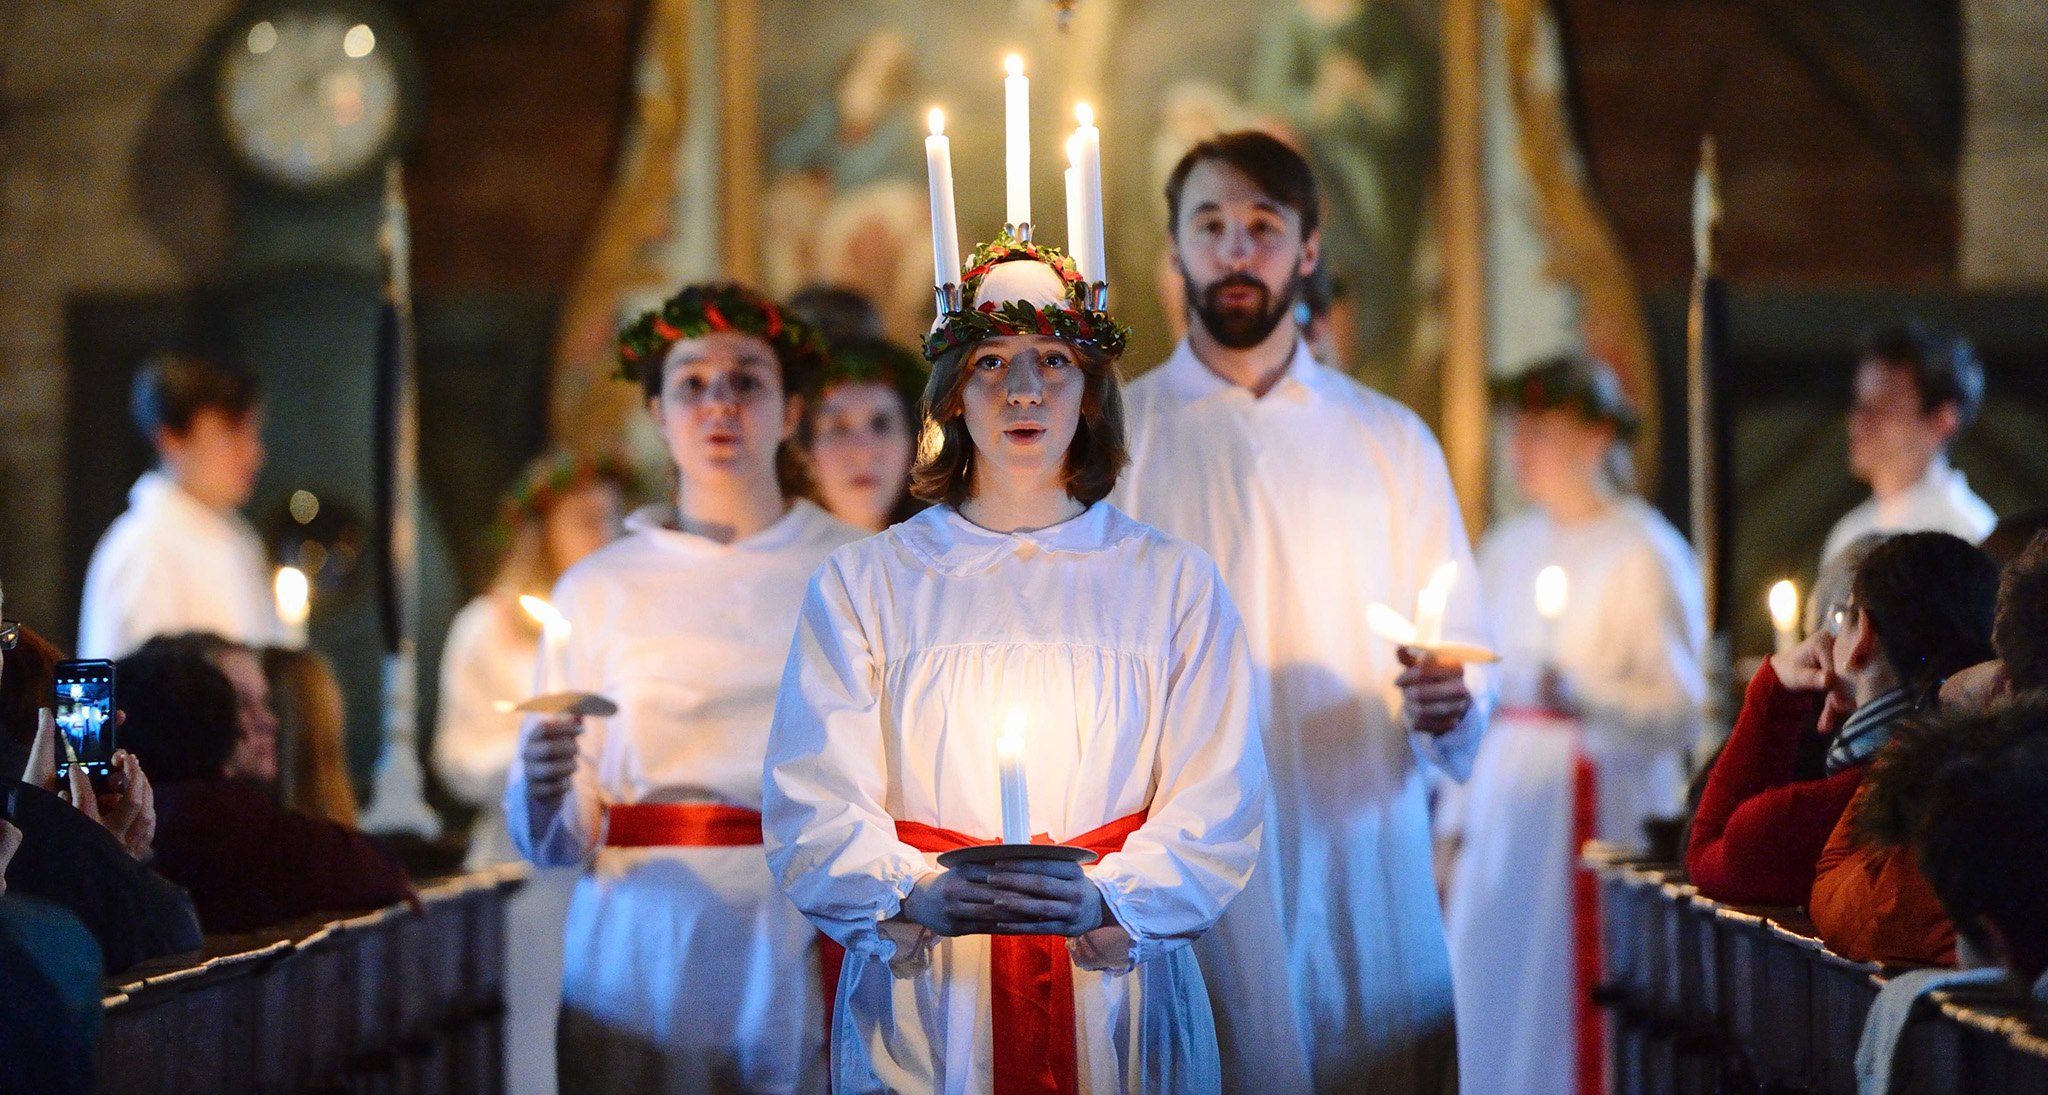 he 'Kongl. Teknologkoren' choir performs in Seglora church at the open-air museum Skansen in Stockholm, Sweden on Saint Lucy's Day, on December 13, 2016.    Saint Lucy's Day is a Christian feast day celebrated on 13 December in Advent, most commonly in Scandinavia. / AFP PHOTO / TT News Agency / Henrik MONTGOMERY / Sweden OUTHENRIK MONTGOMERY/AFP/Getty Images